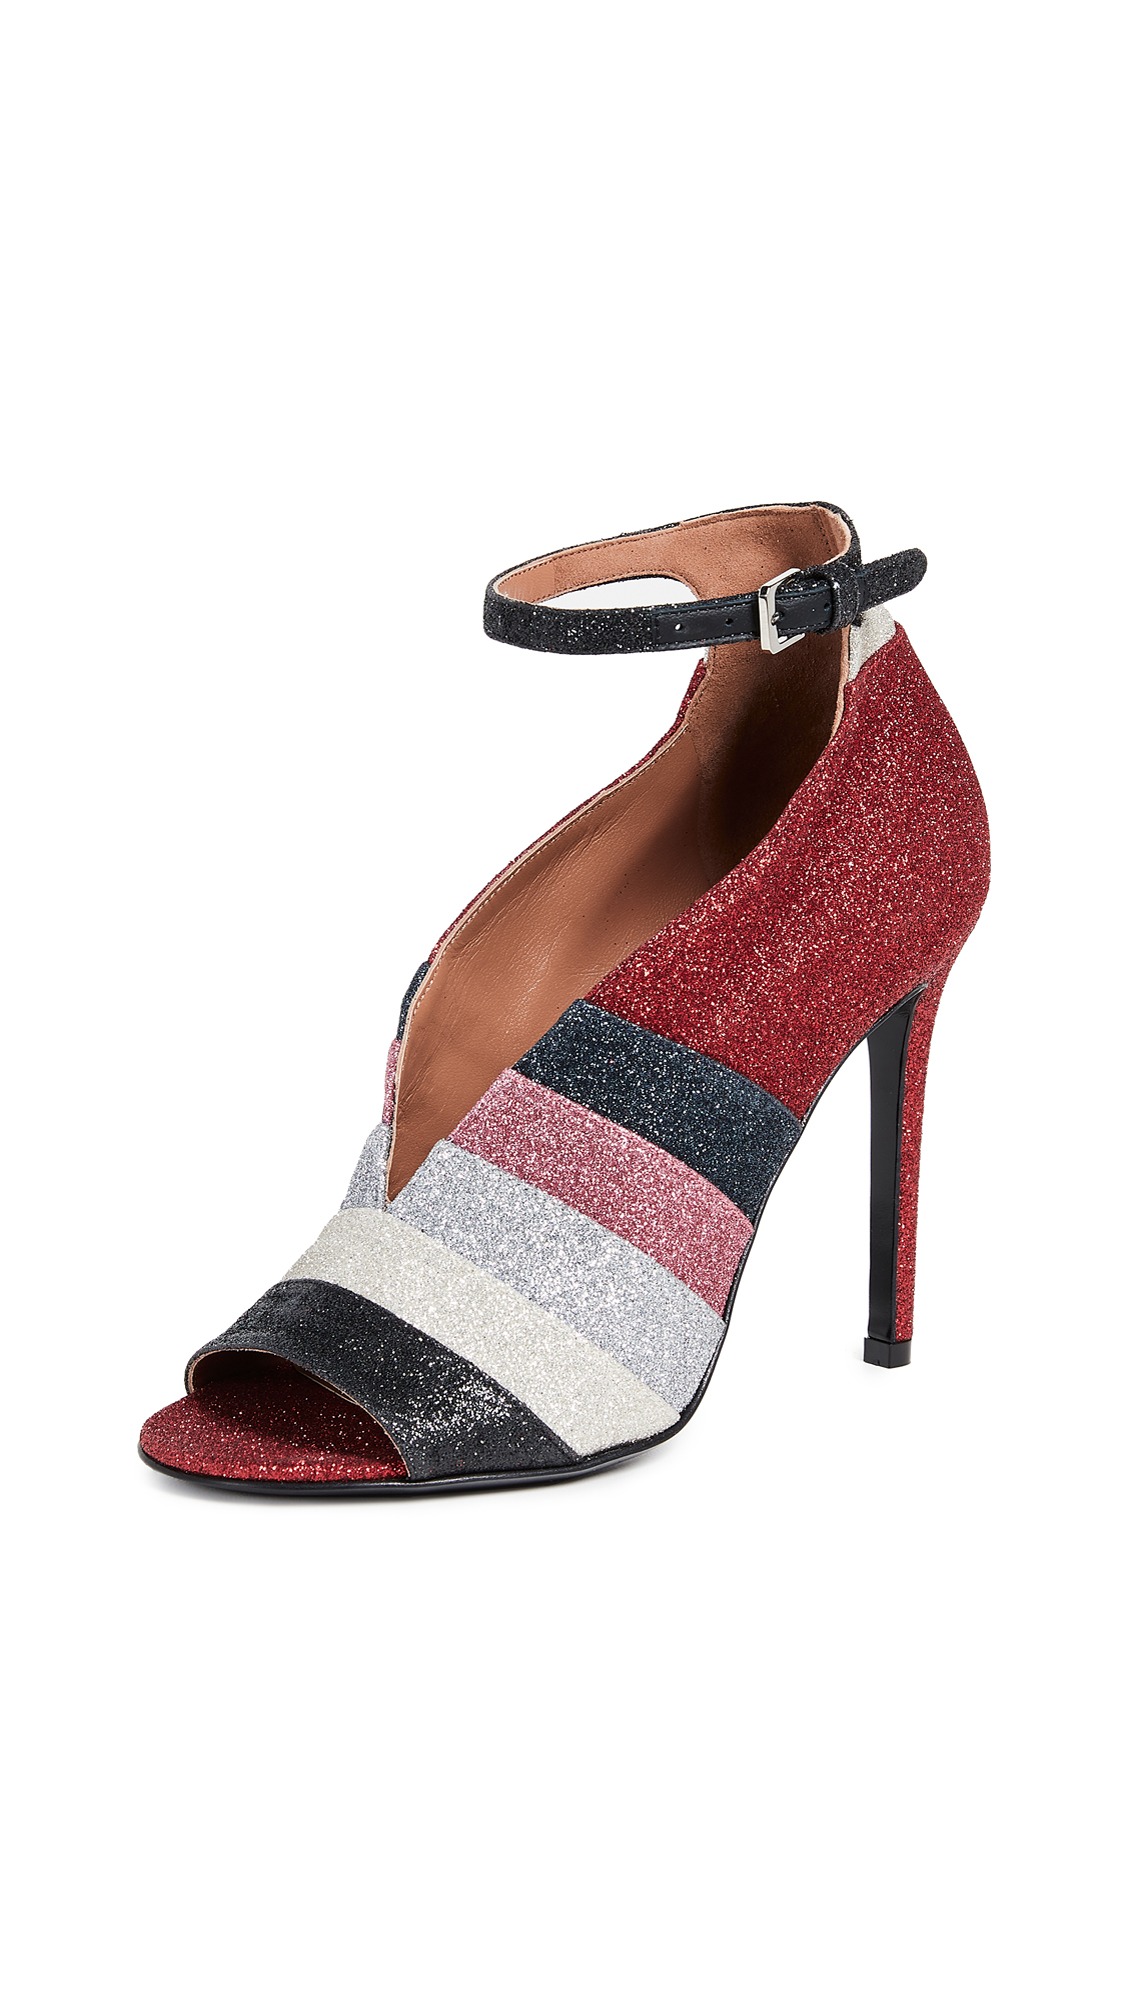 Laurence Dacade Sianni Pumps - Multi